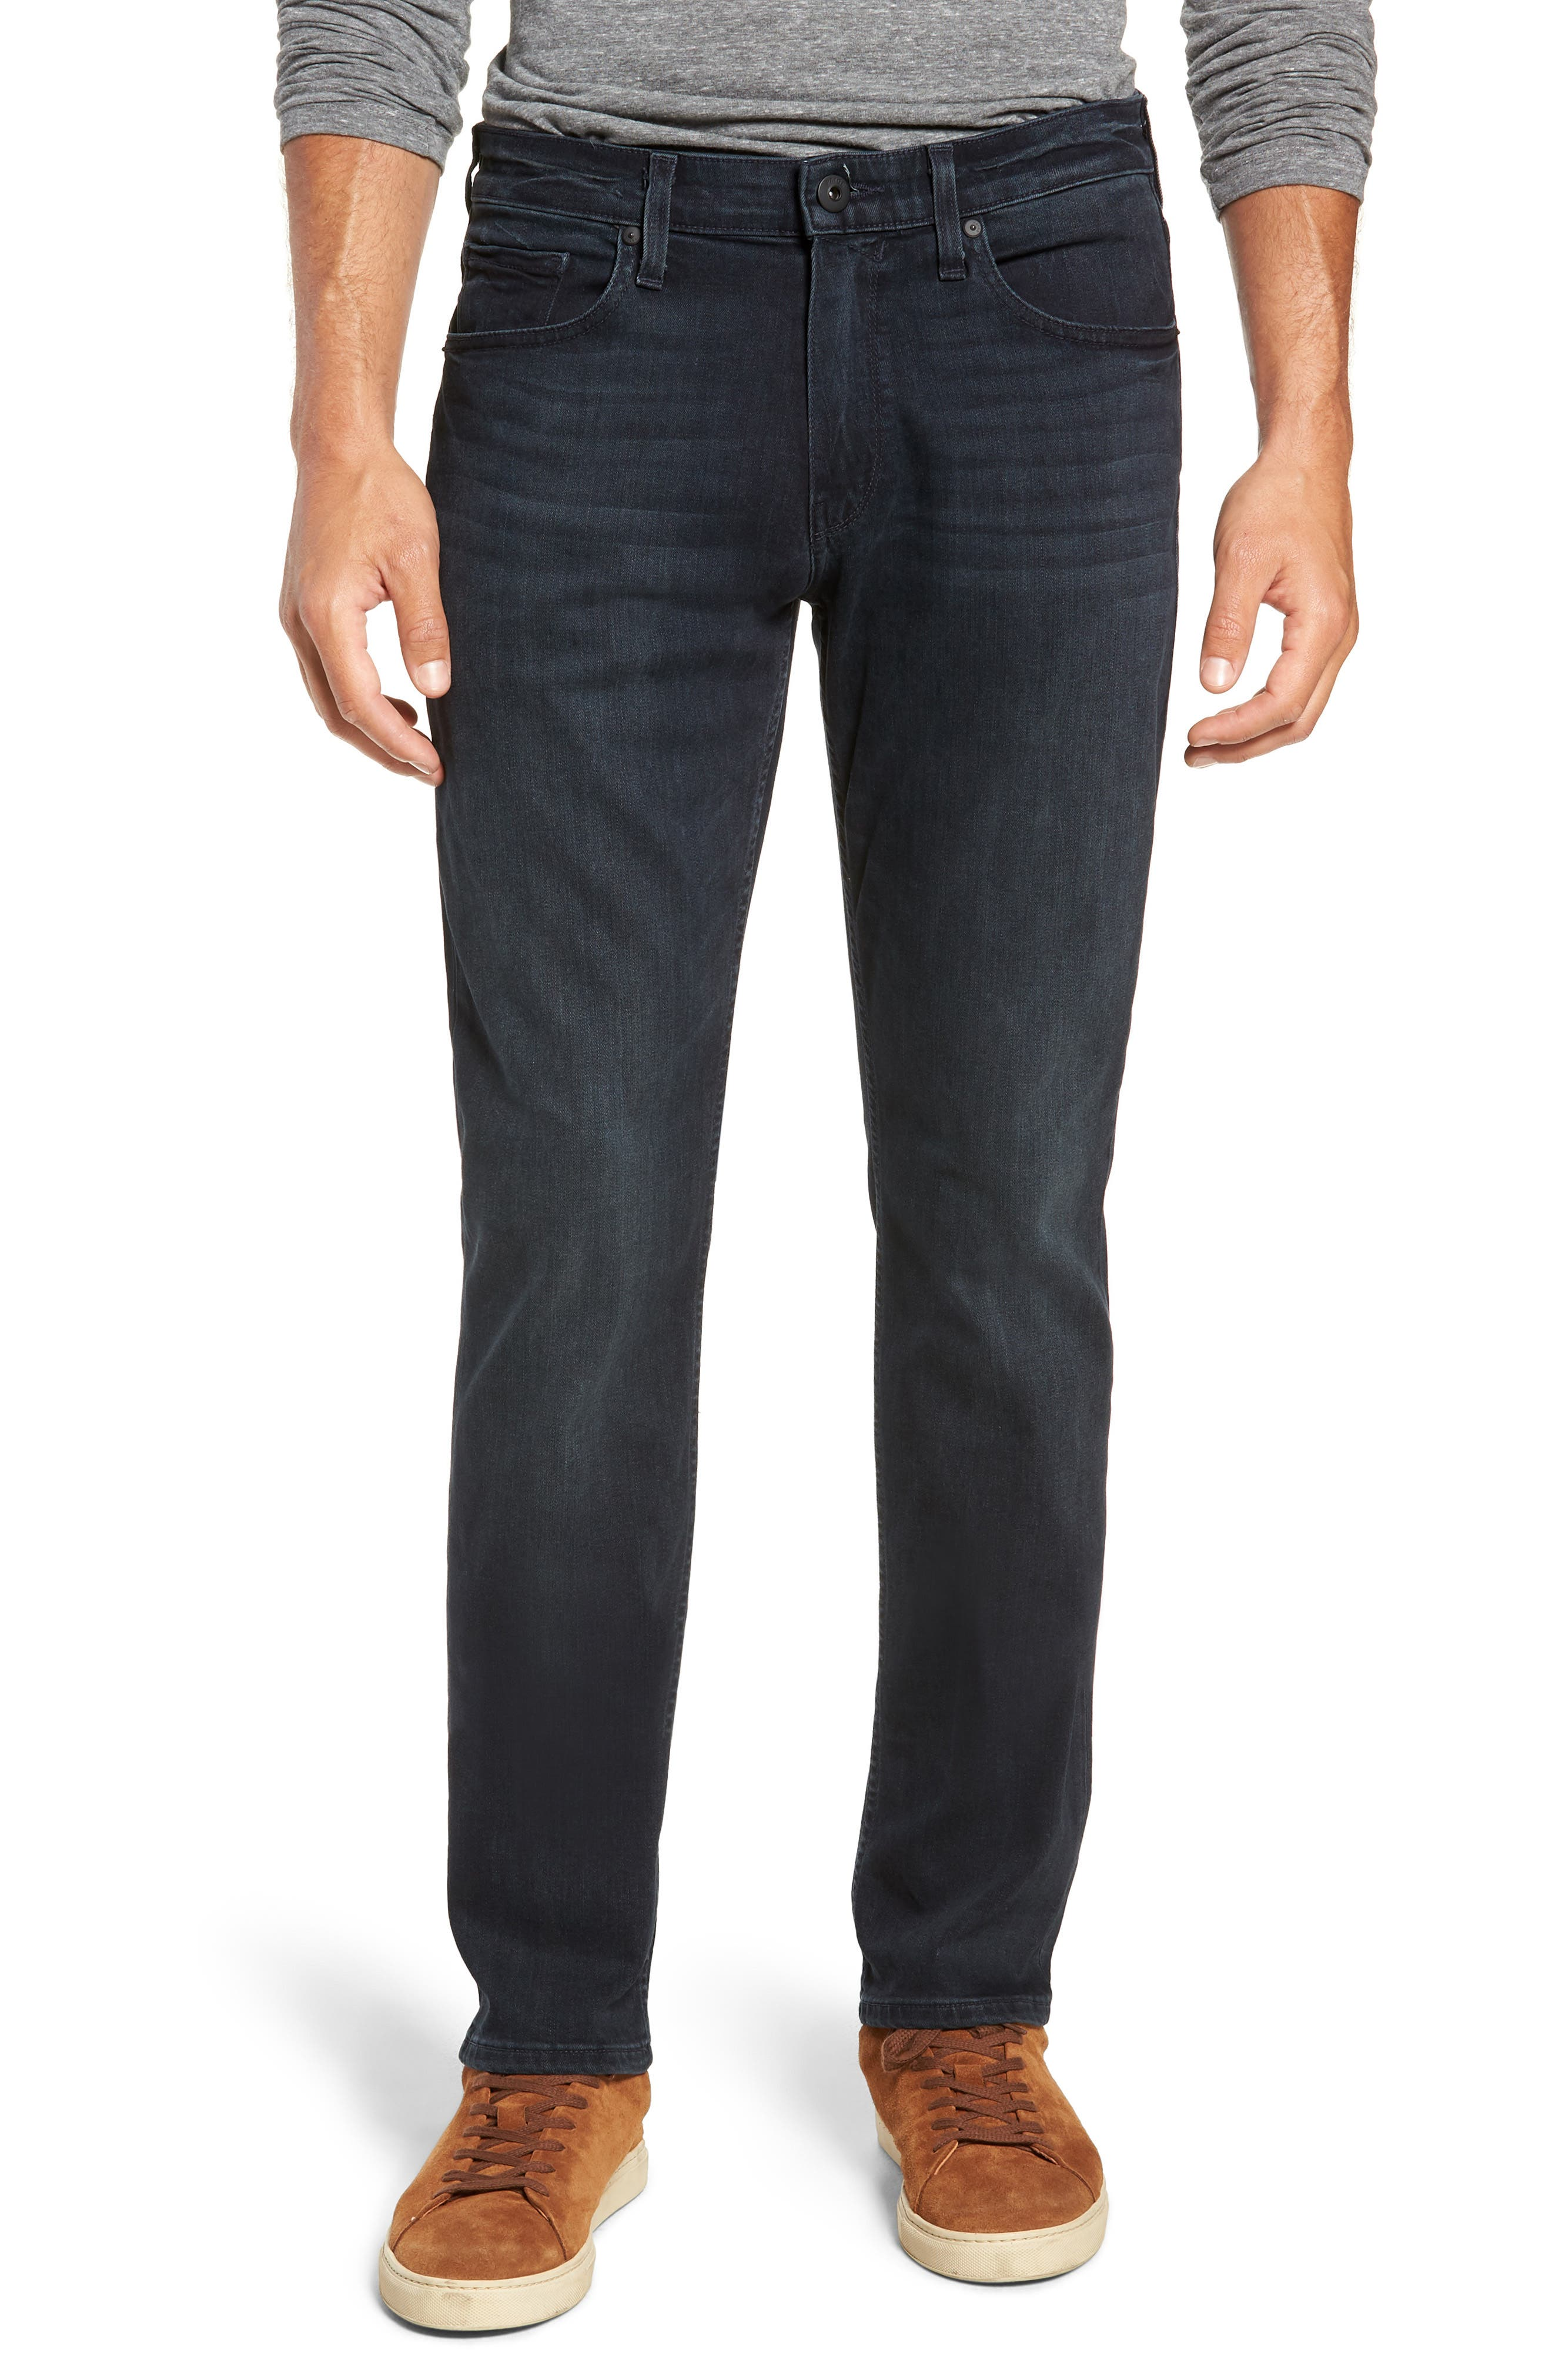 Transcend - Federal Slim Fit Straight Leg Jeans,                             Main thumbnail 1, color,                             BECKETT